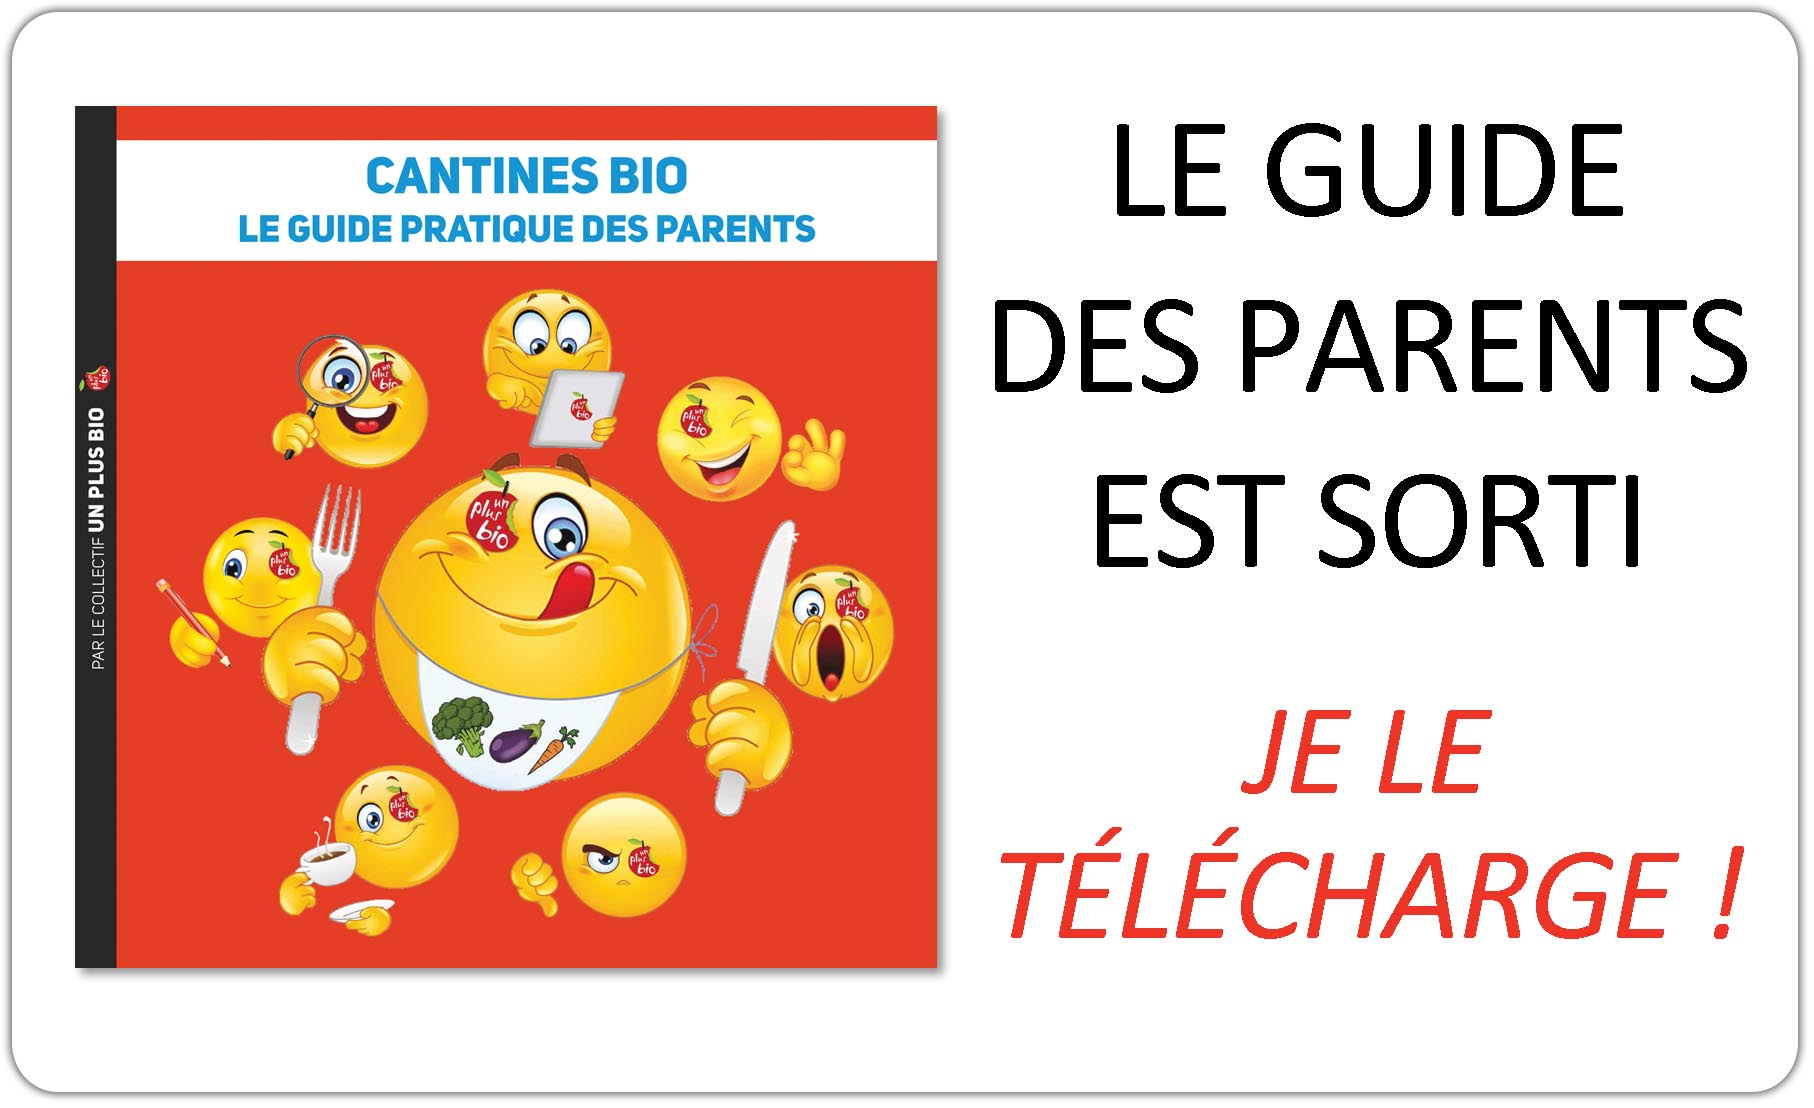 guide pratique cantines bio parents